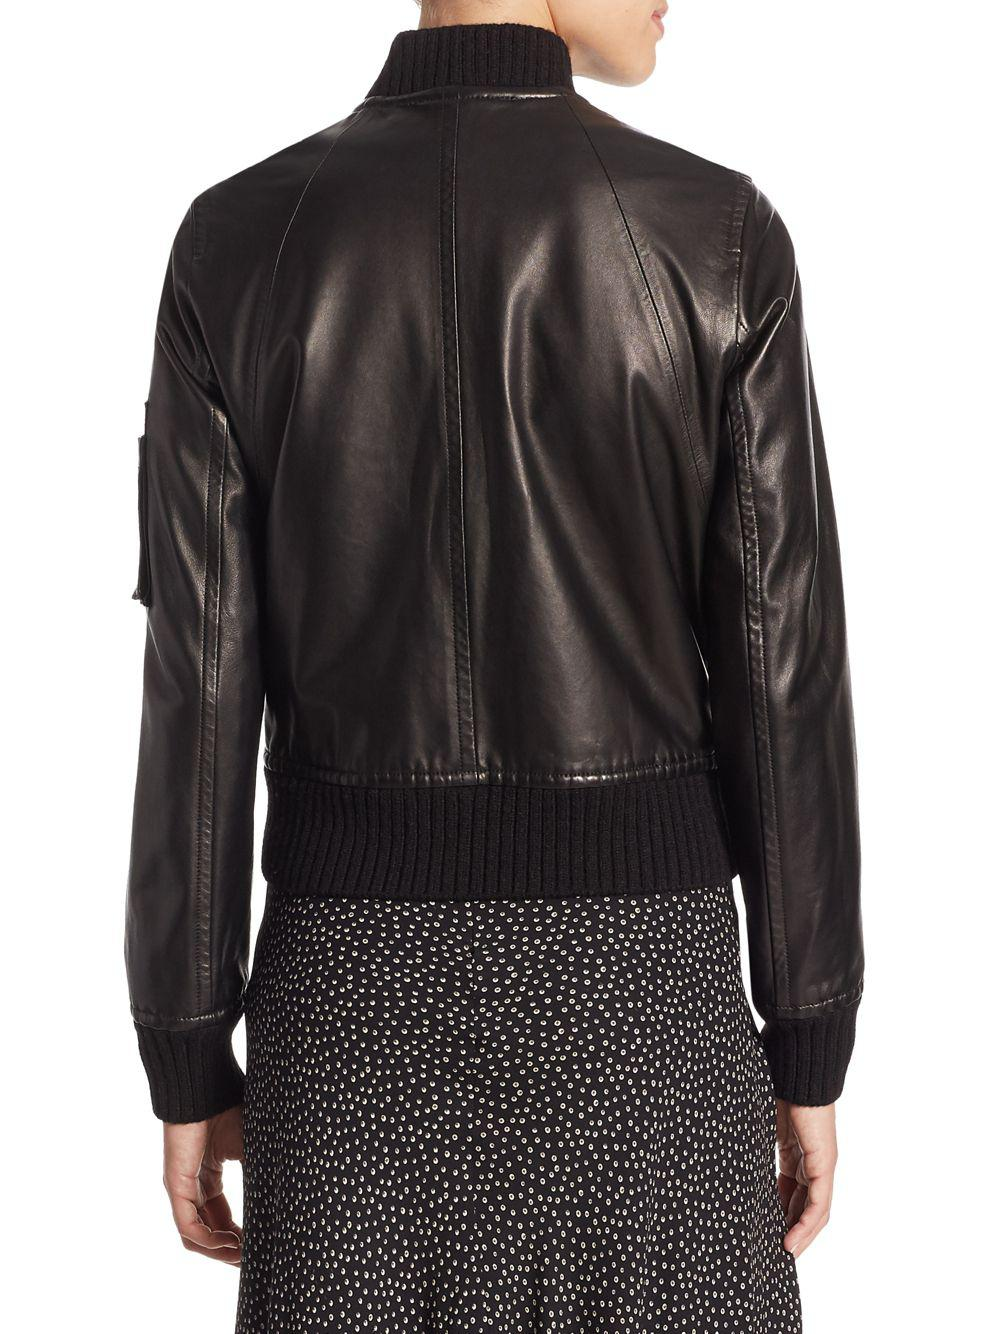 9c7bdb0f6fd Lyst - Vince Lamb Leather Bomber Jacket in Black - Save 15%